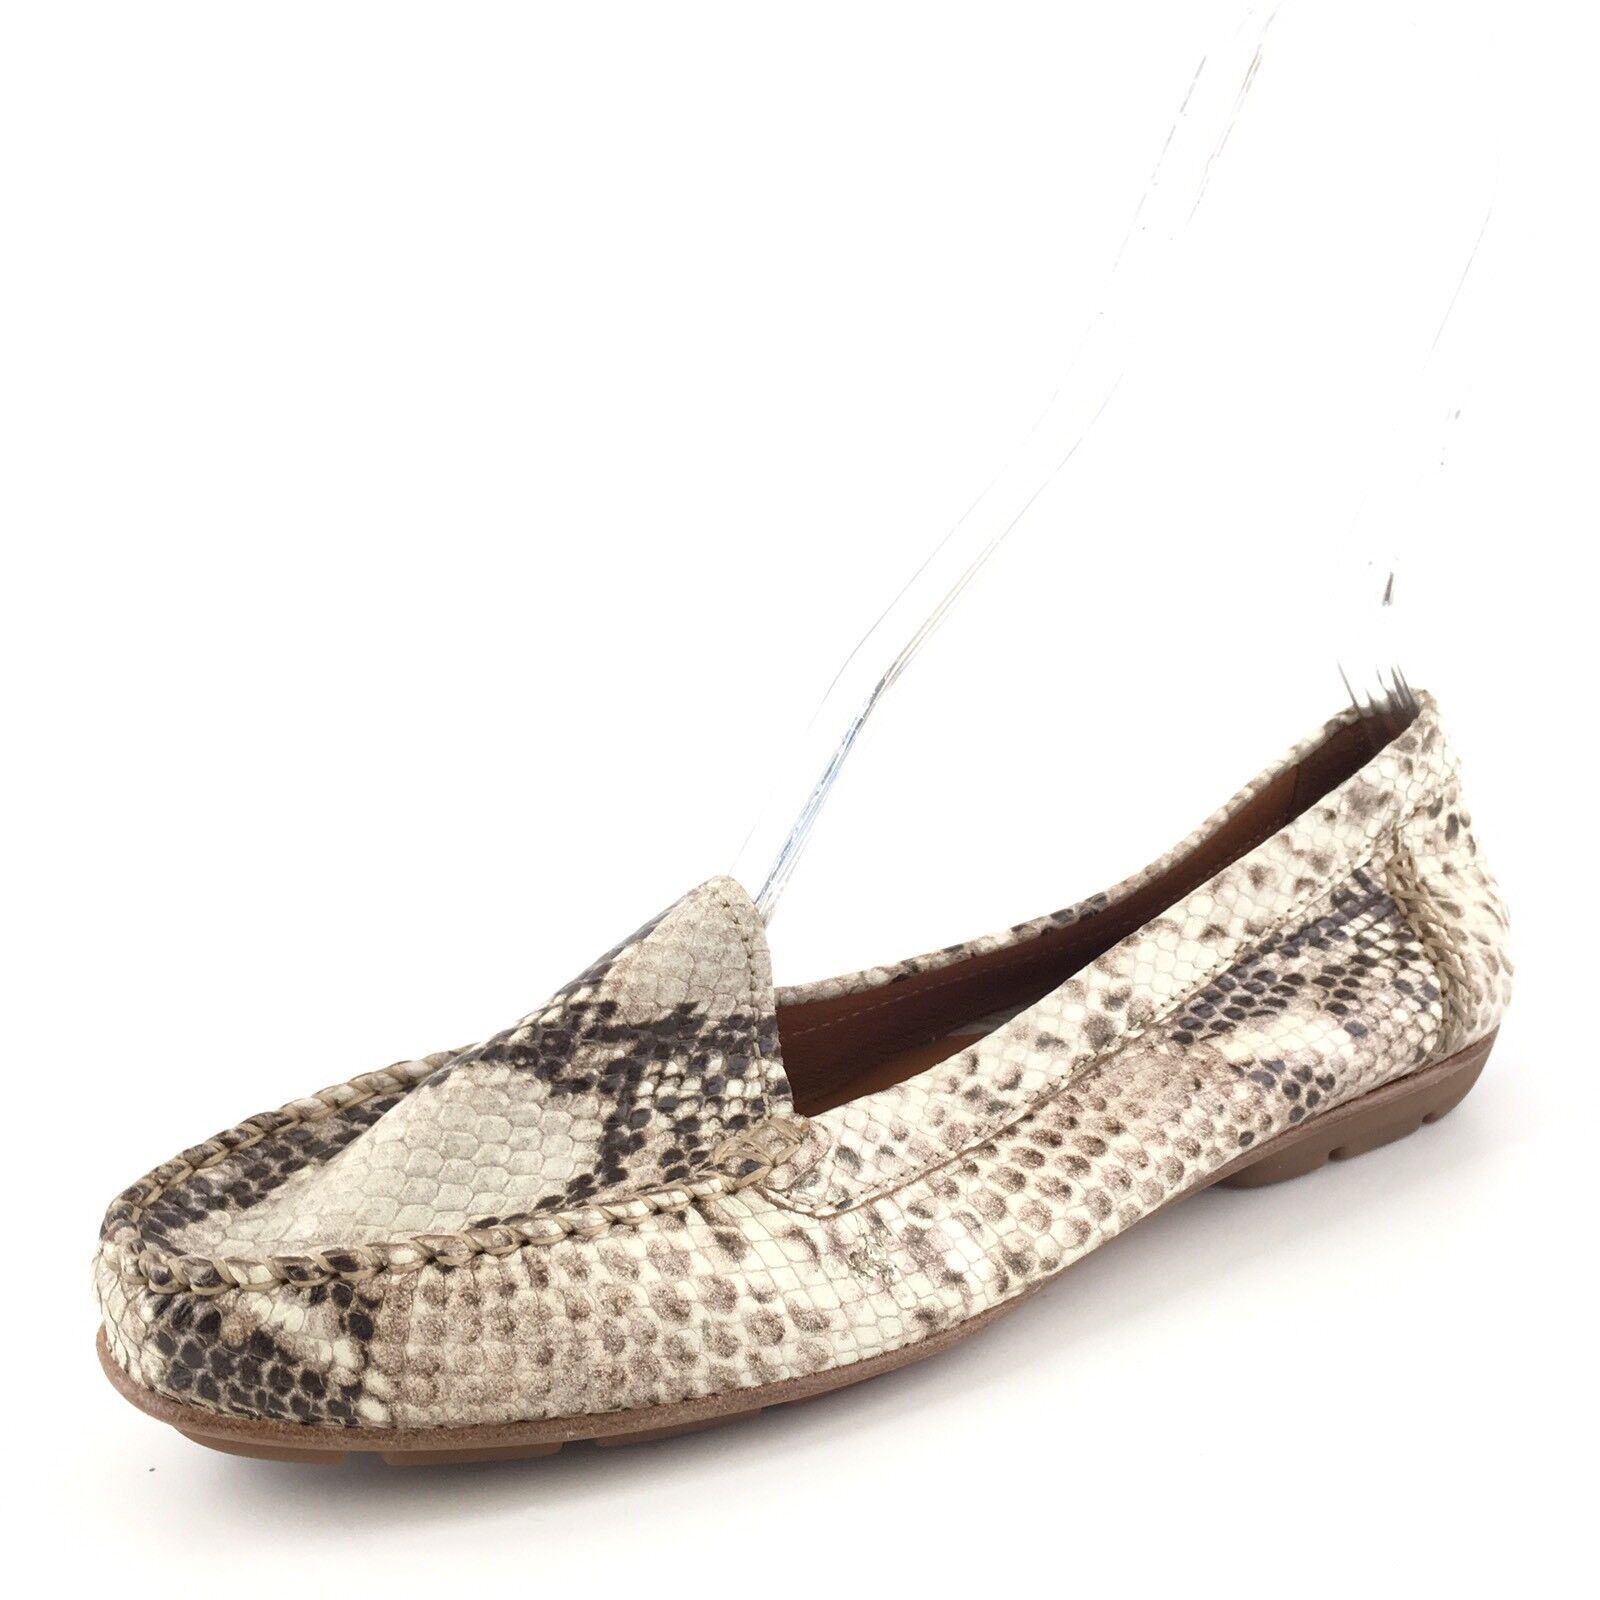 GEOX Respira Snake Print Leather Casual Slip On Loafers Women's Size 39.5 M